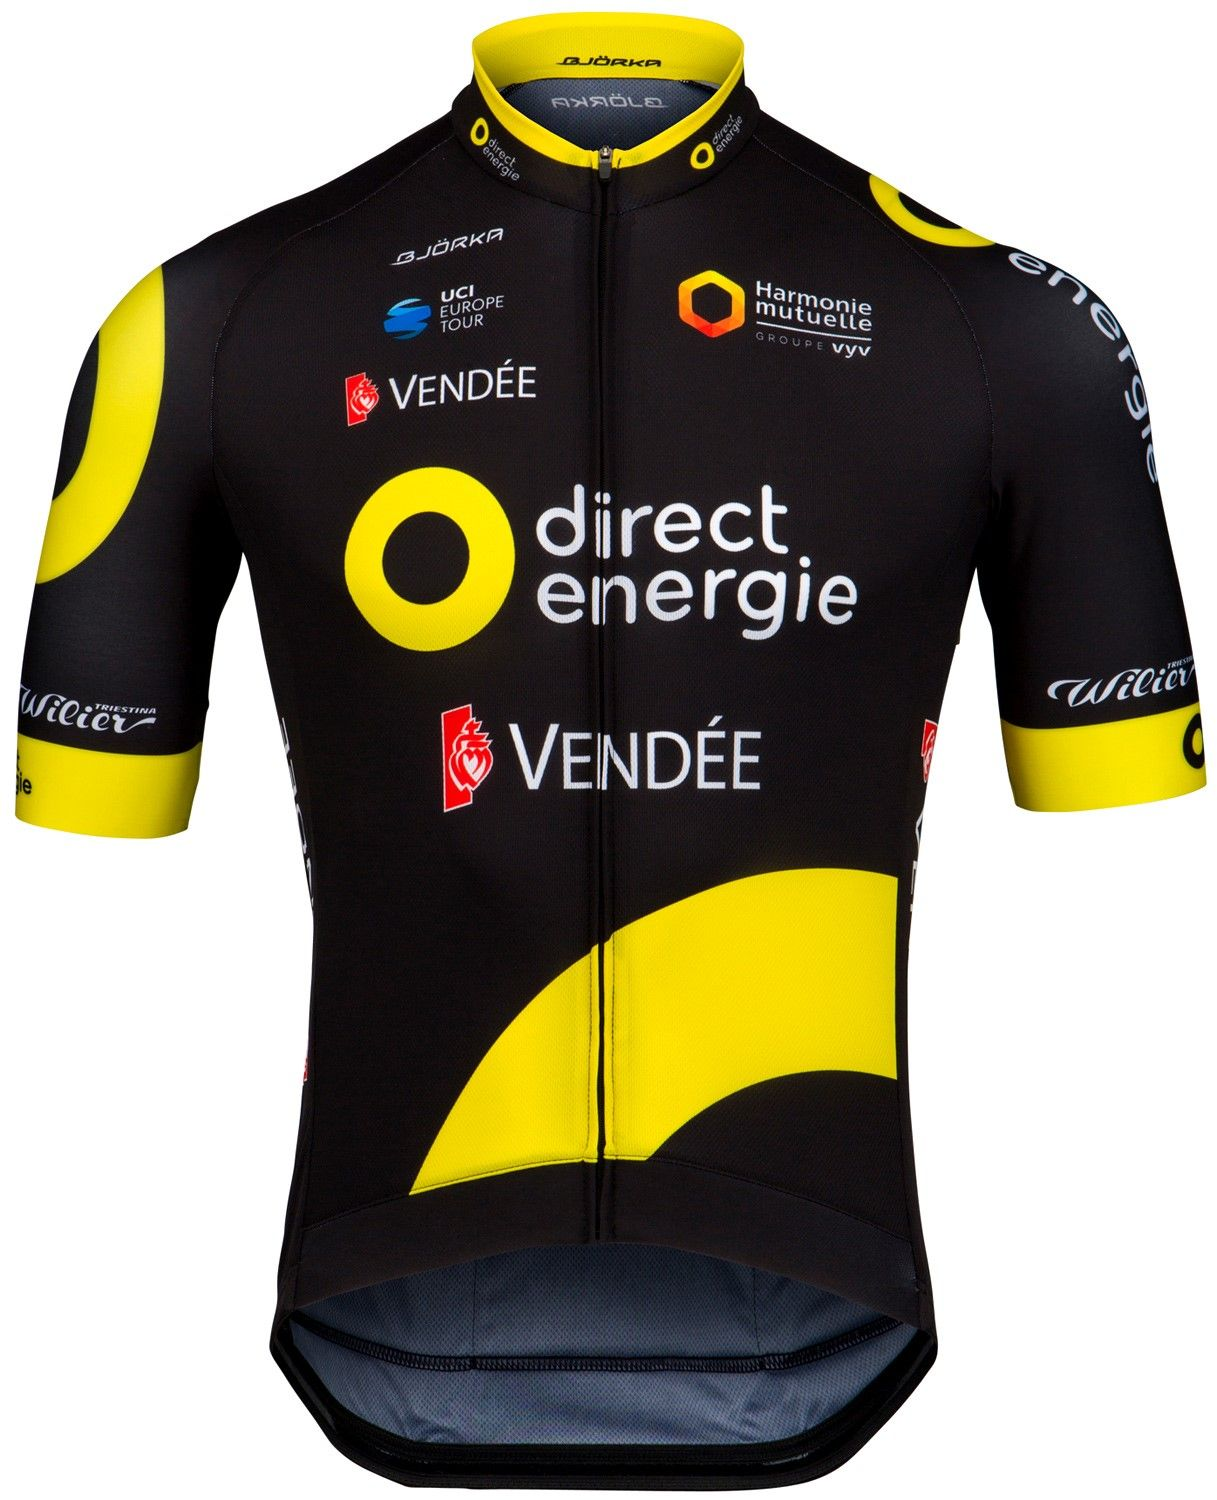 ... sleeve cycling jersey (long zip) - Wilier professional cycling team.  Previous e36758d3e